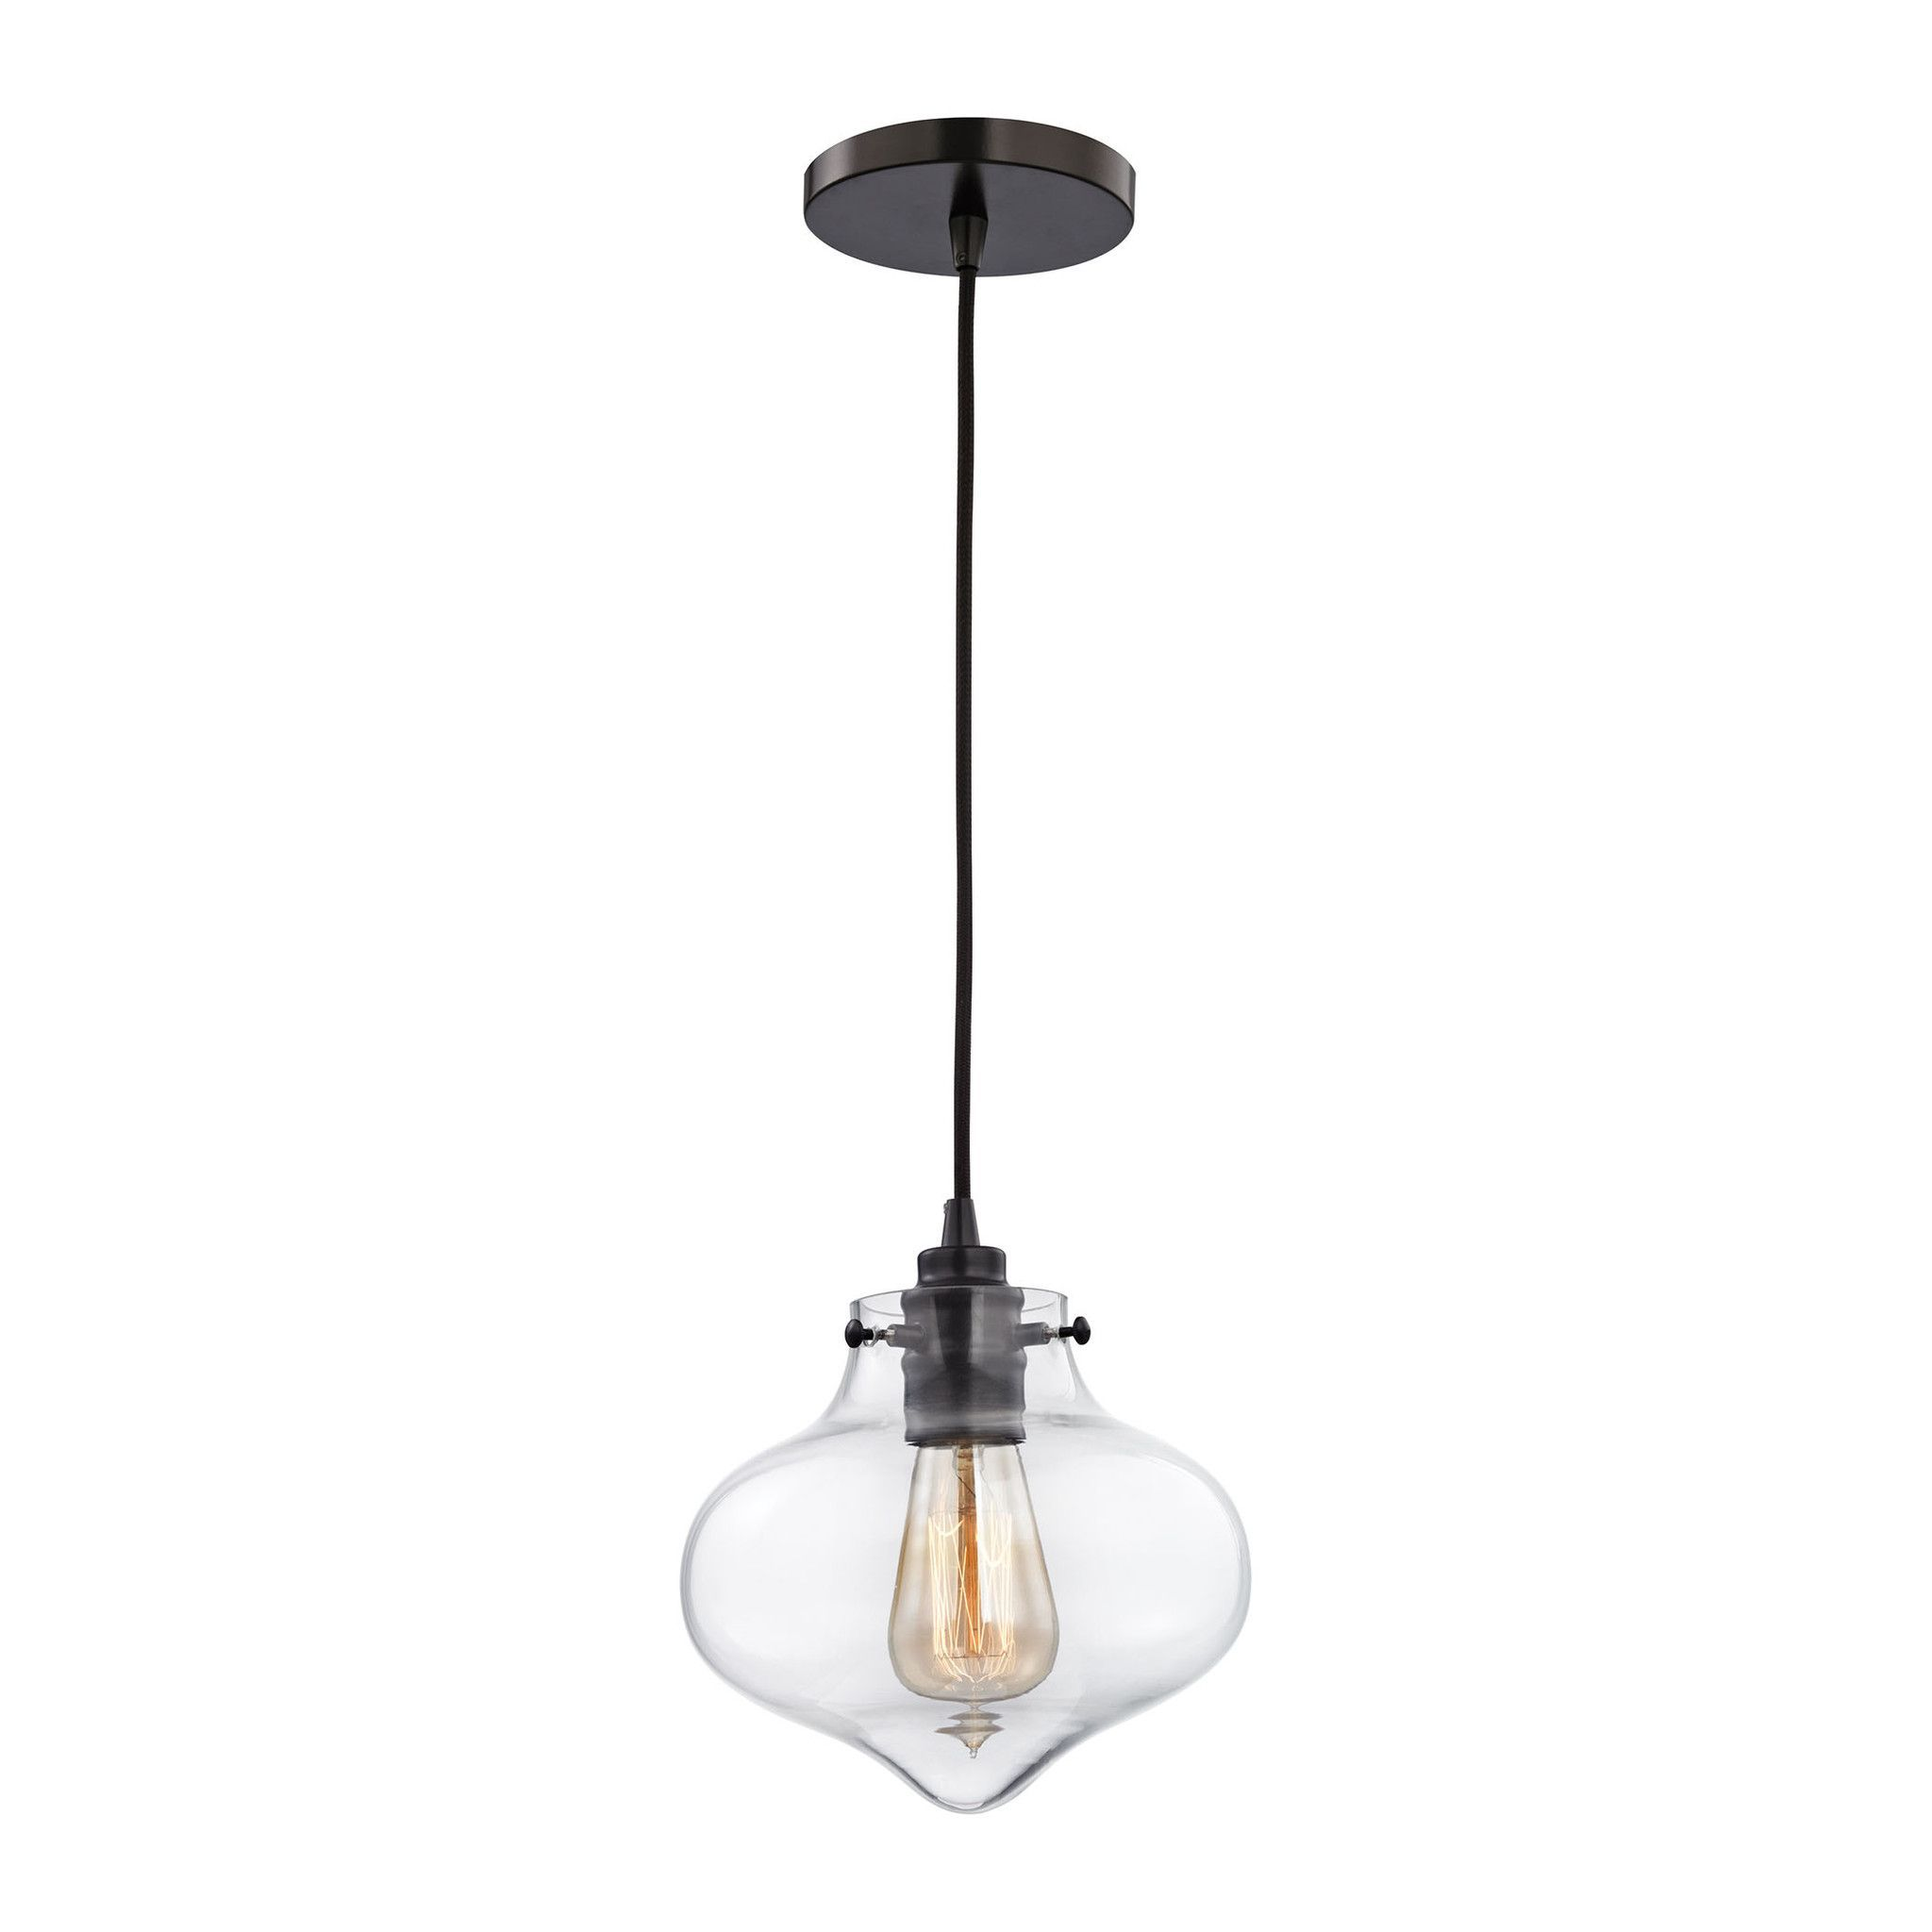 Kelsey 1 Light Pendant In Oil Rubbed Bronze And Clear